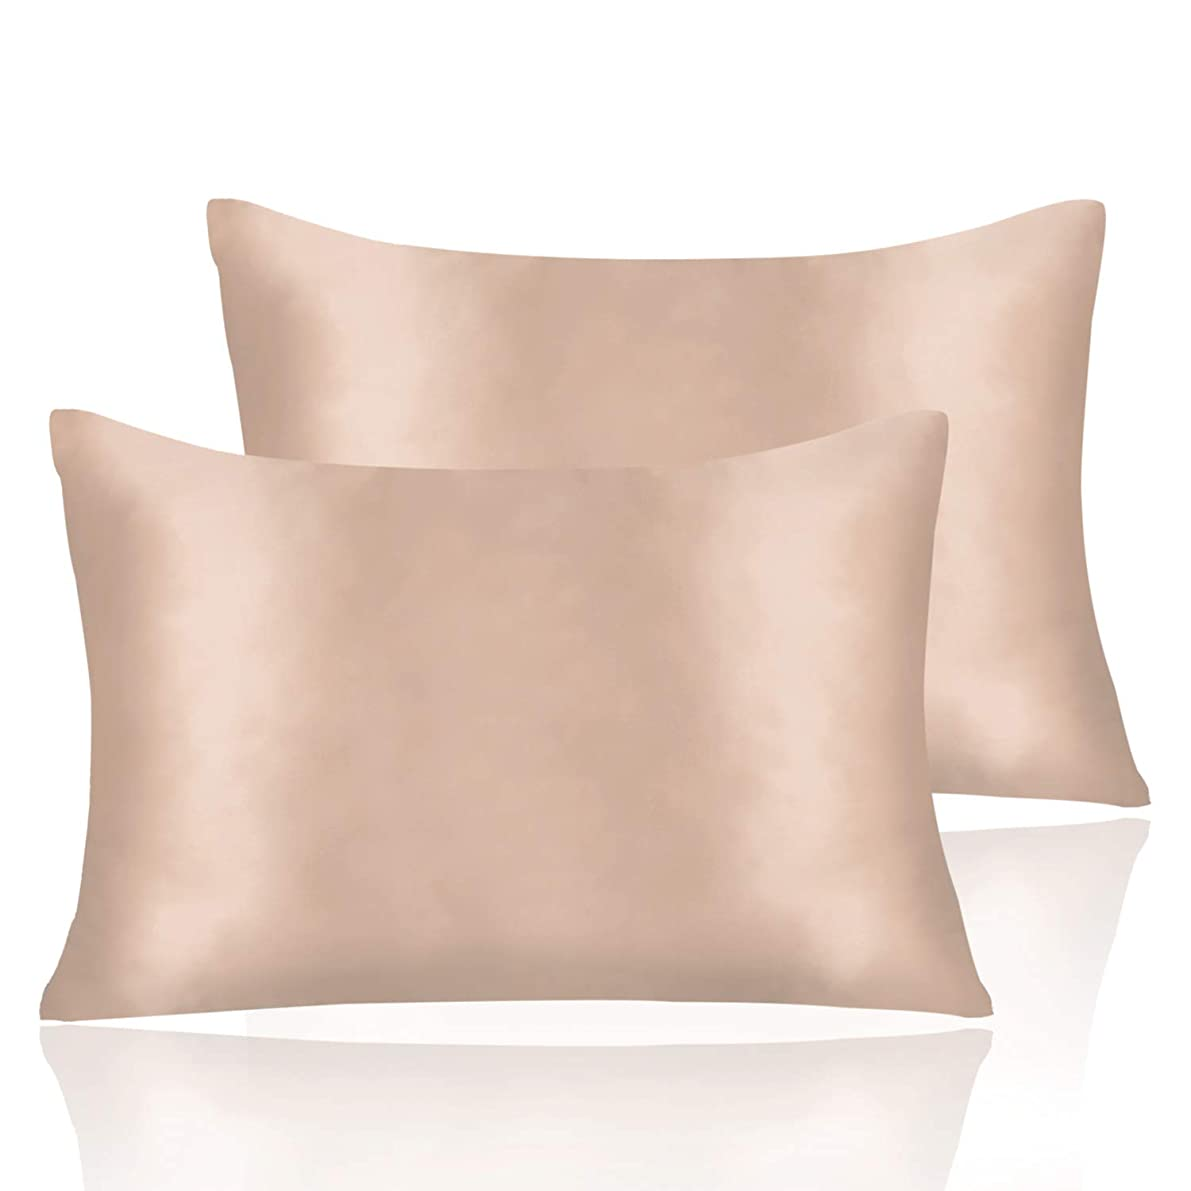 2 Pieces Satin Pillowcases Set for Hair and Skin Hypoallergenic Silky Feel Soft and Cozy Pillowcase Easy to Wash Envelope Closure (Champagne, 20